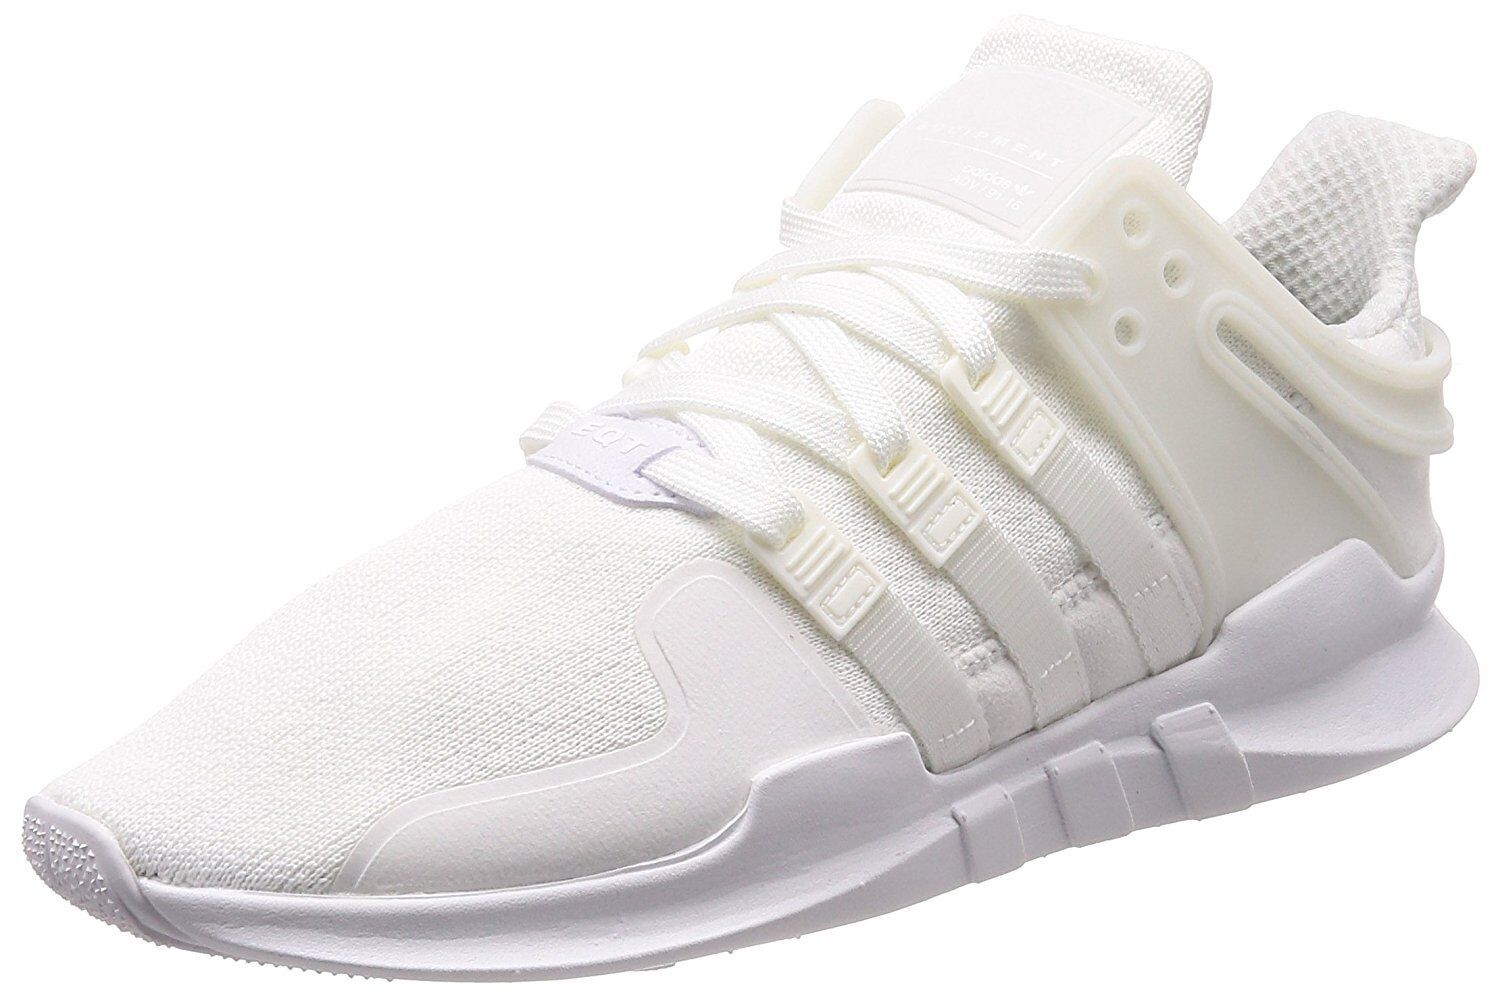 ADIDAS RUNNING MENS EQT SUPPORT ADV RUNNING ADIDAS SHOES #CP9558 f5a564